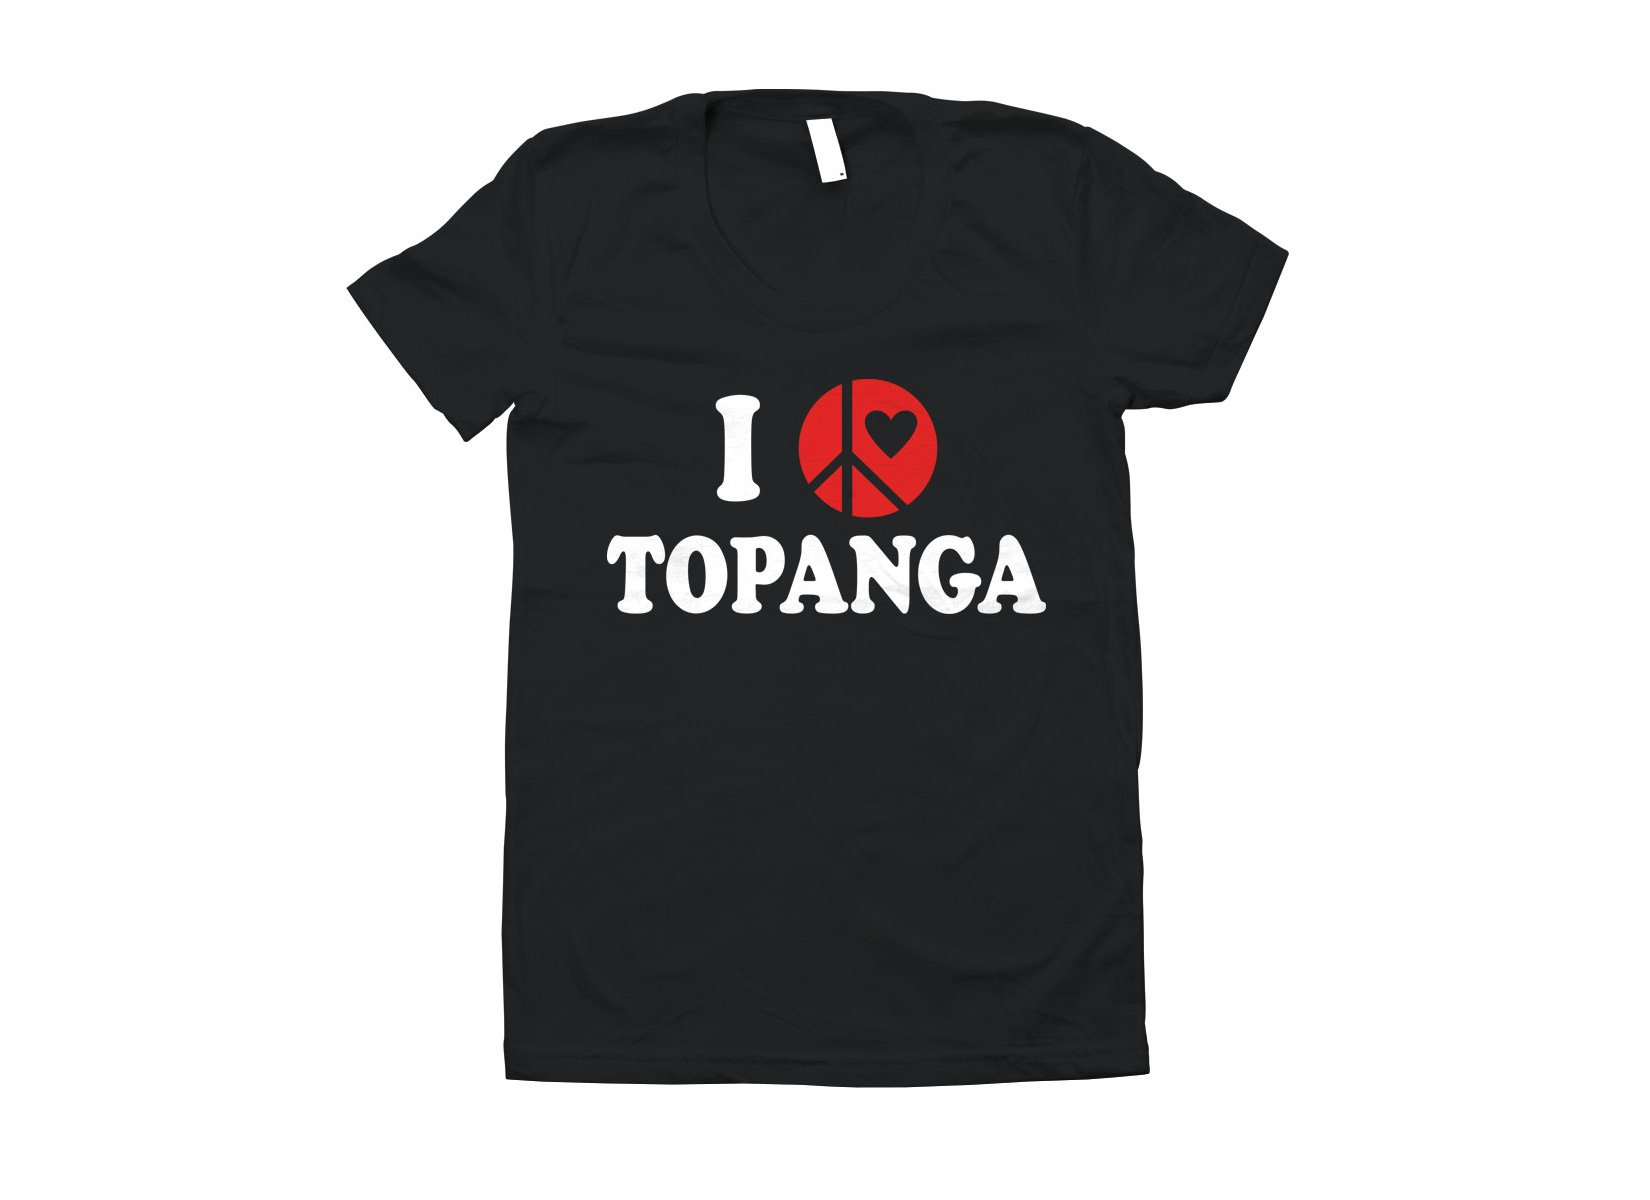 Topanga on Juniors T-Shirt